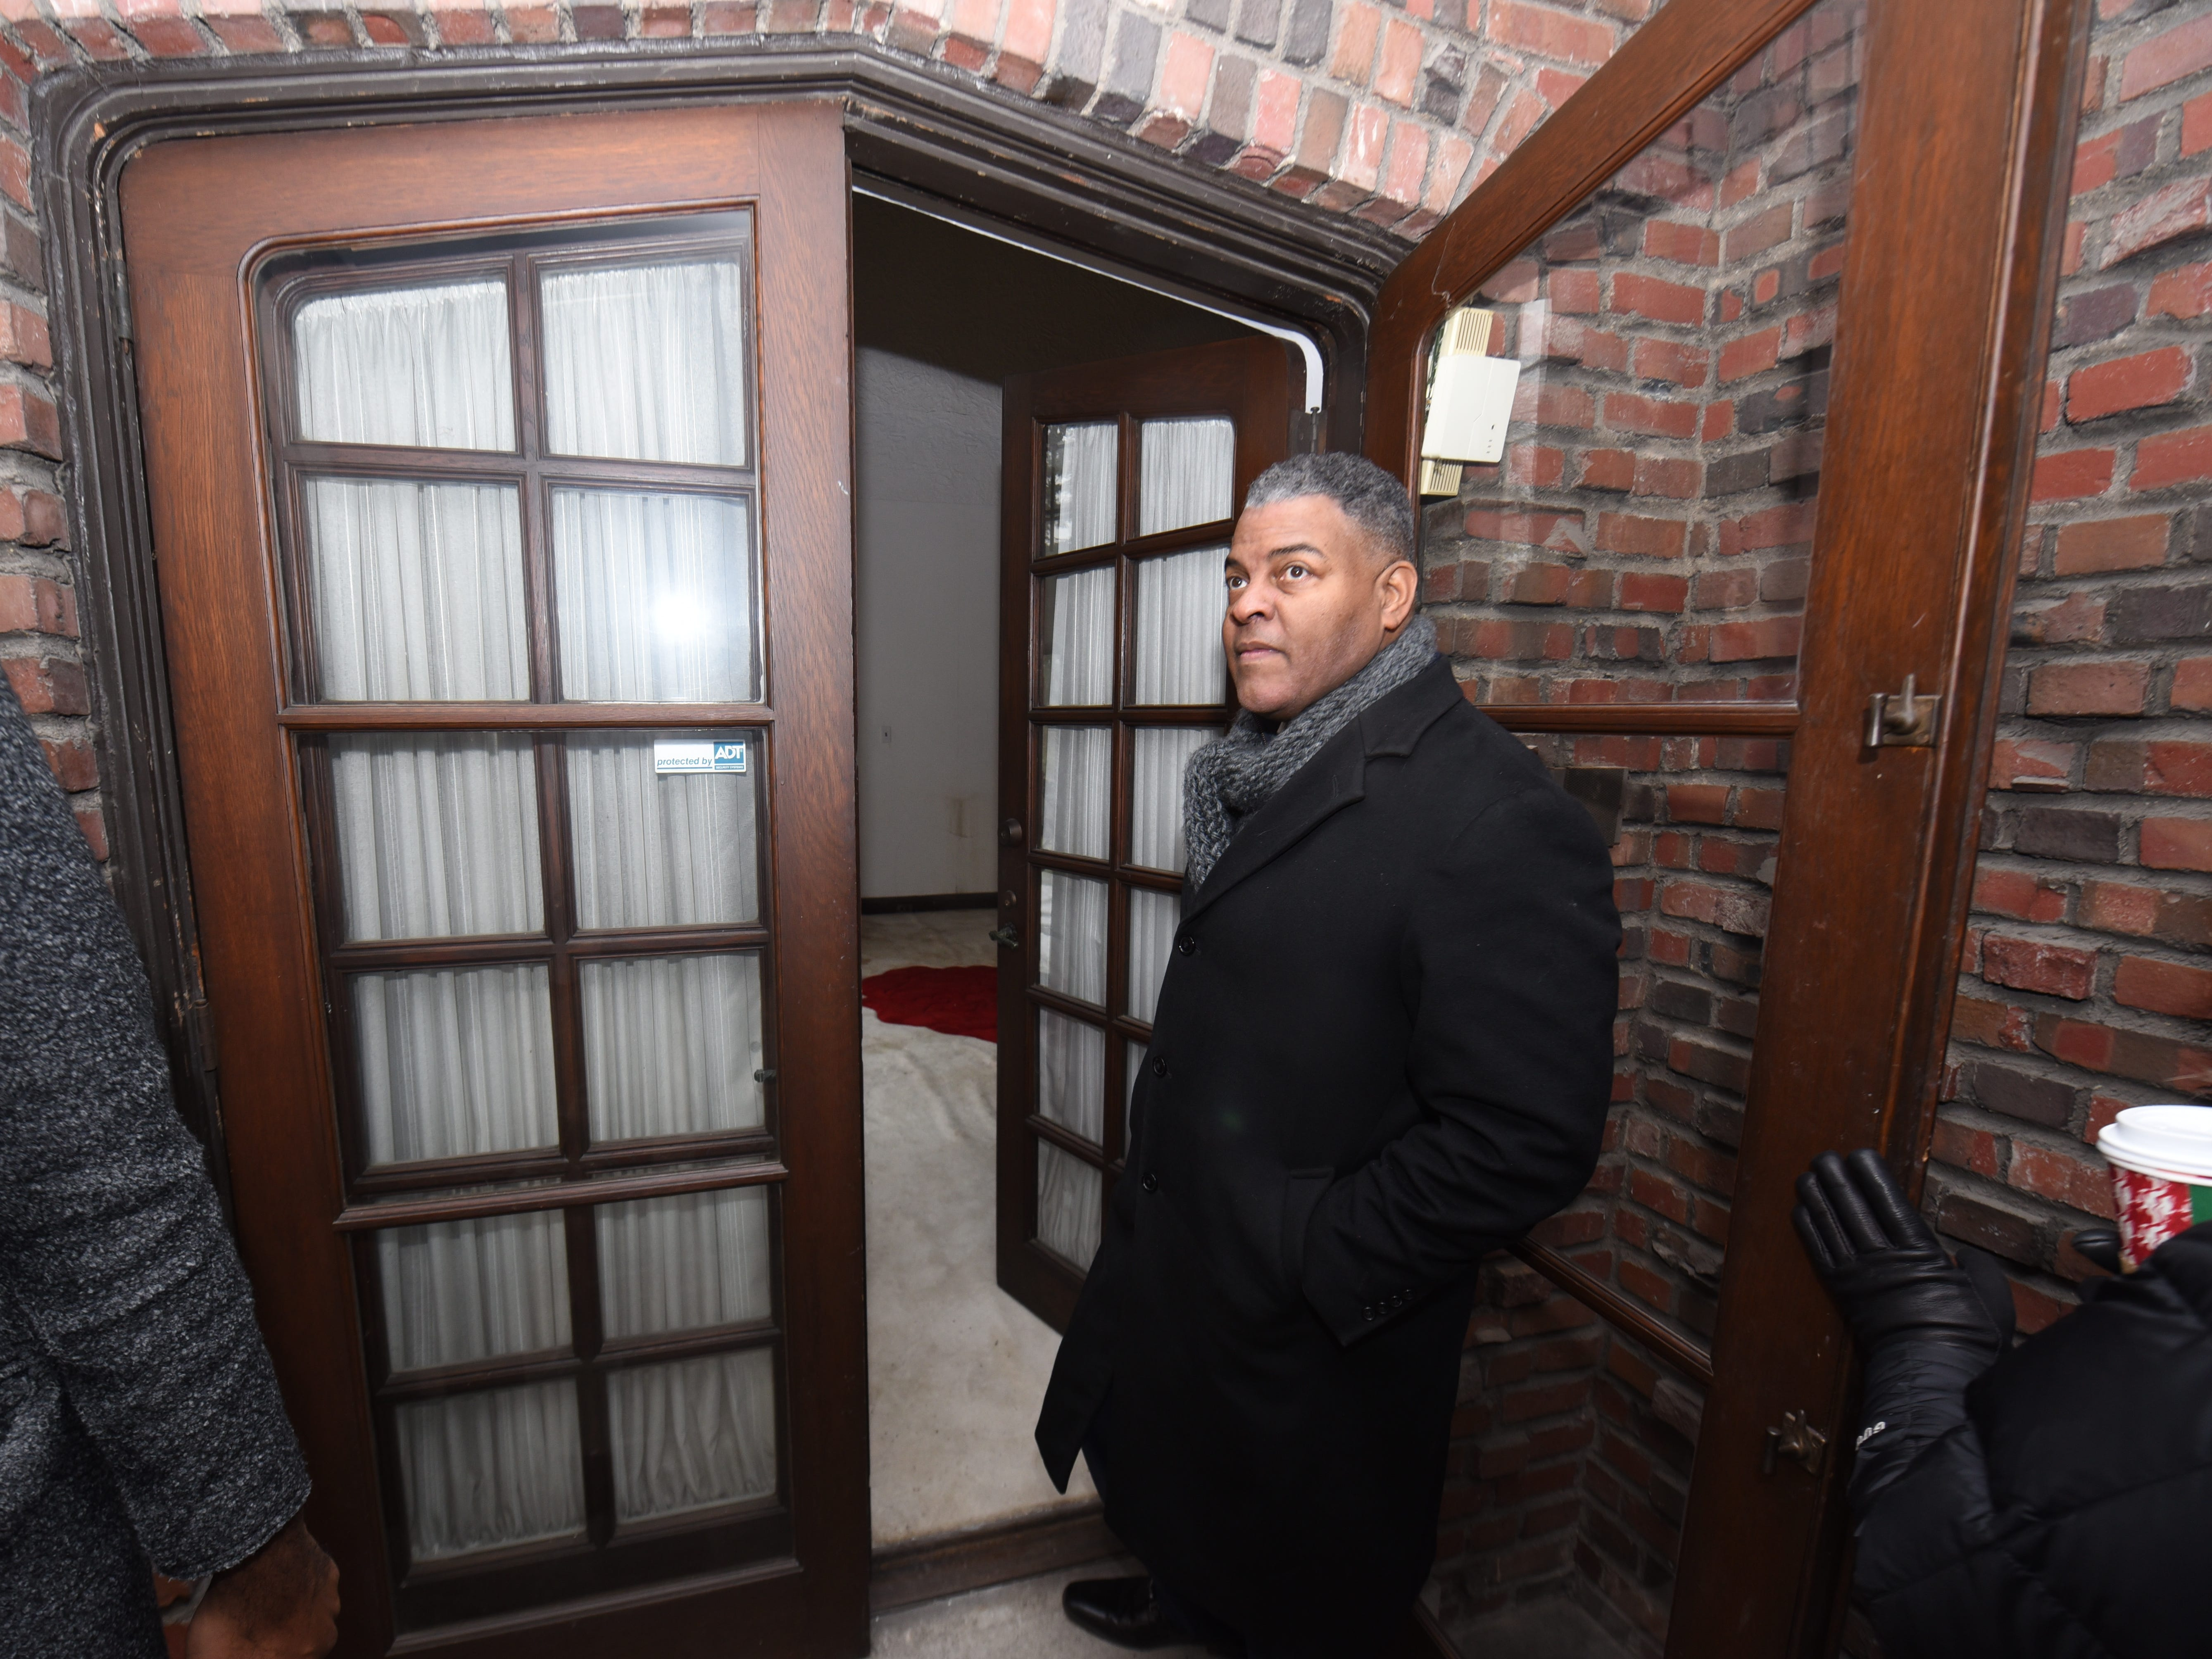 Anthony O. Kellum, president of Kellum Mortgage in Troy, intends to update and renovate the historic home.